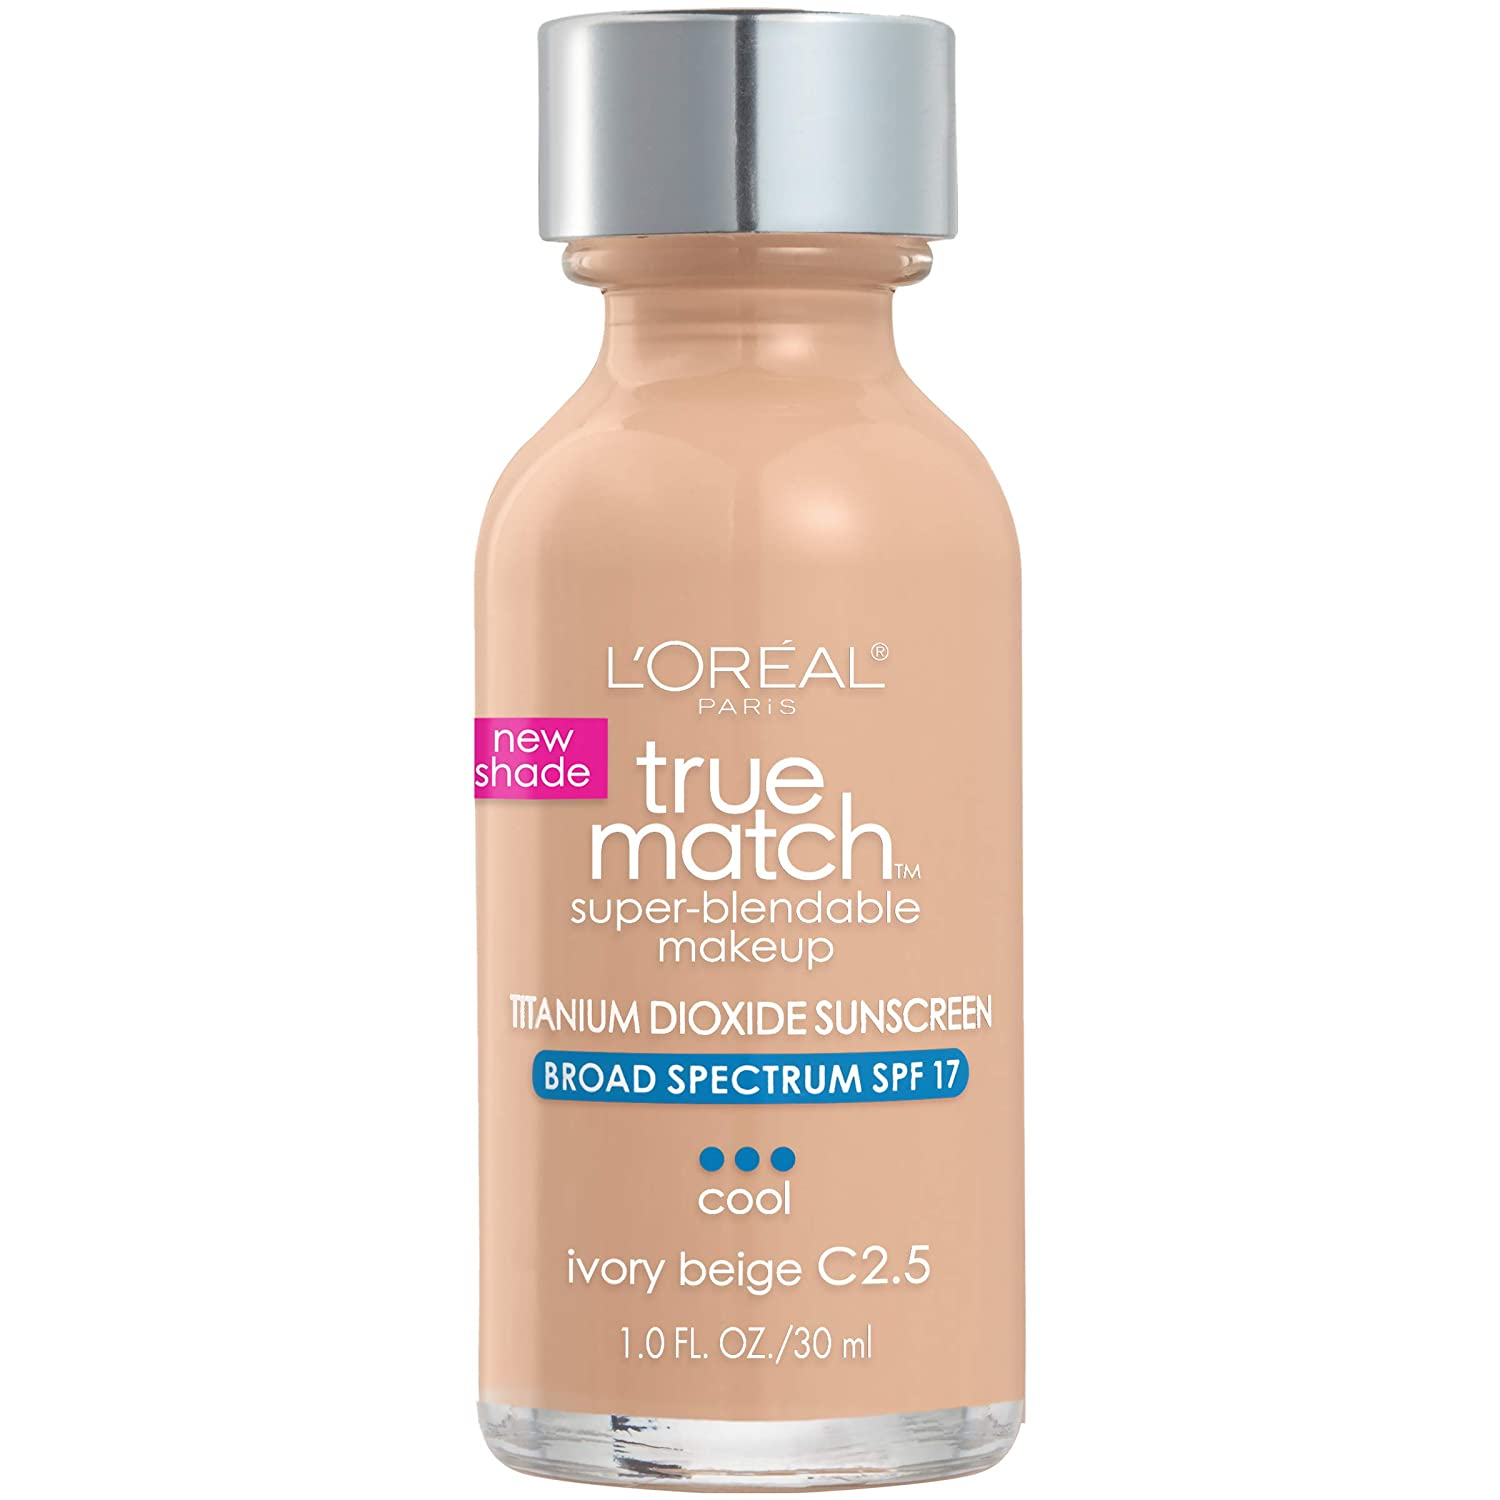 L'Oreal Paris Makeup True Match Super-Blendable Liquid Foundation, Ivory Beige C2.5, 1 Fl Oz,1 Count